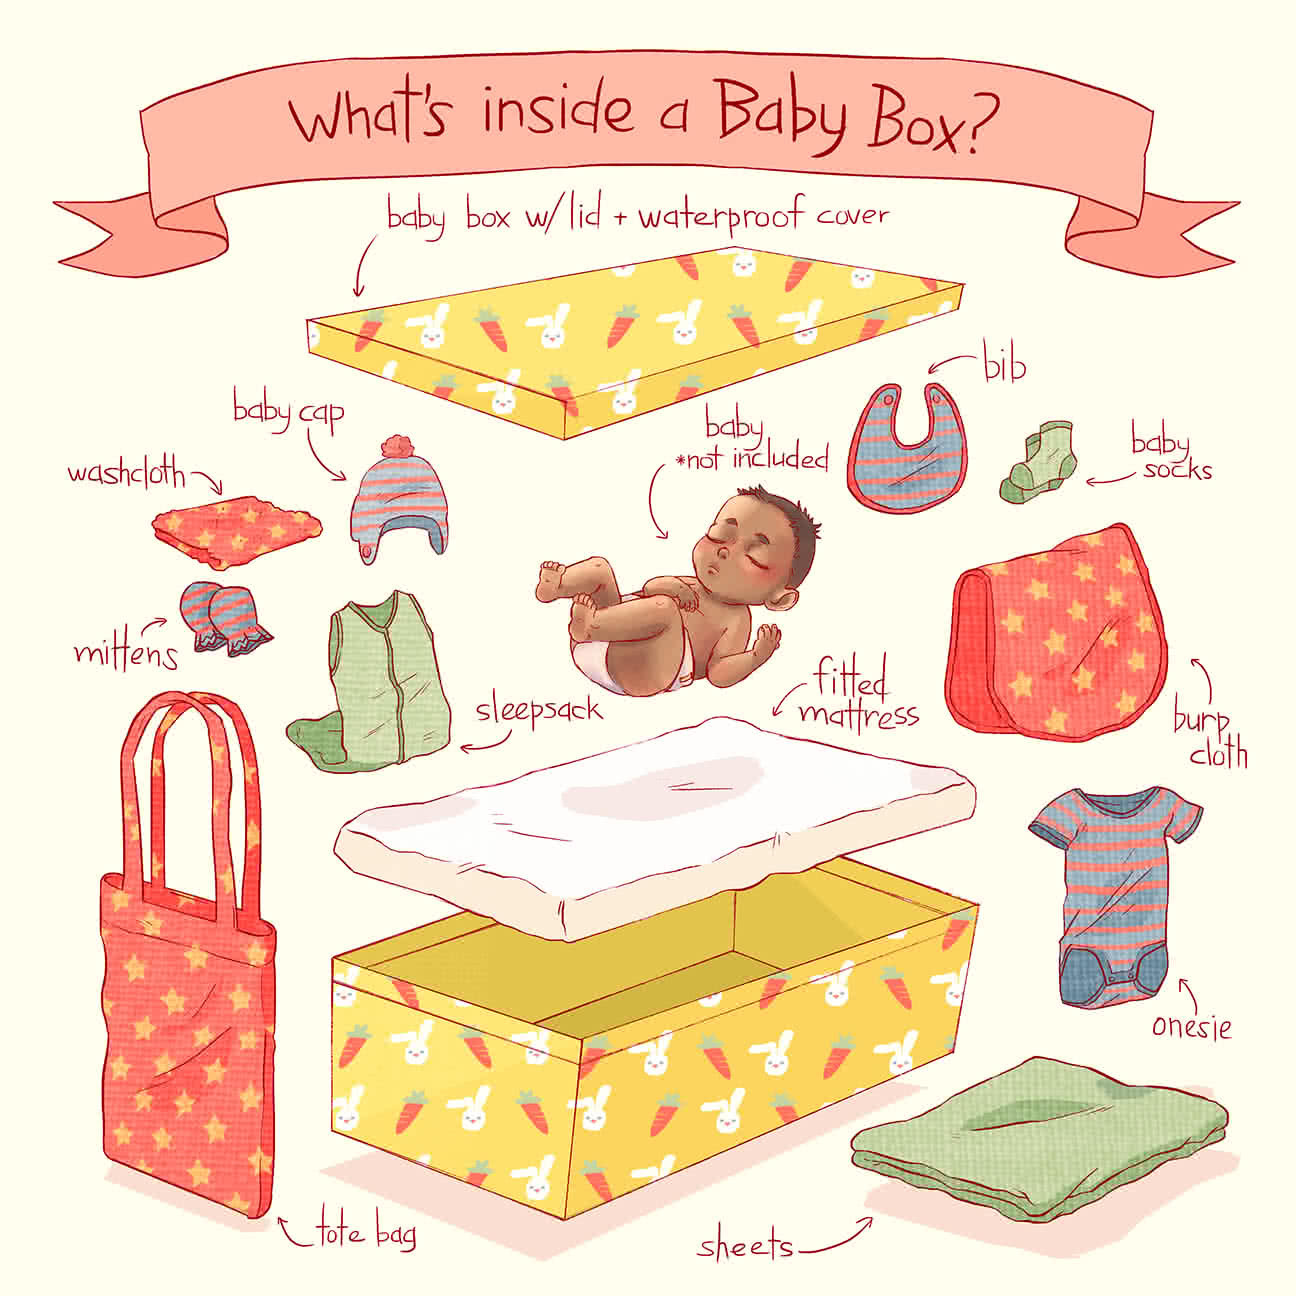 what's a baby box?